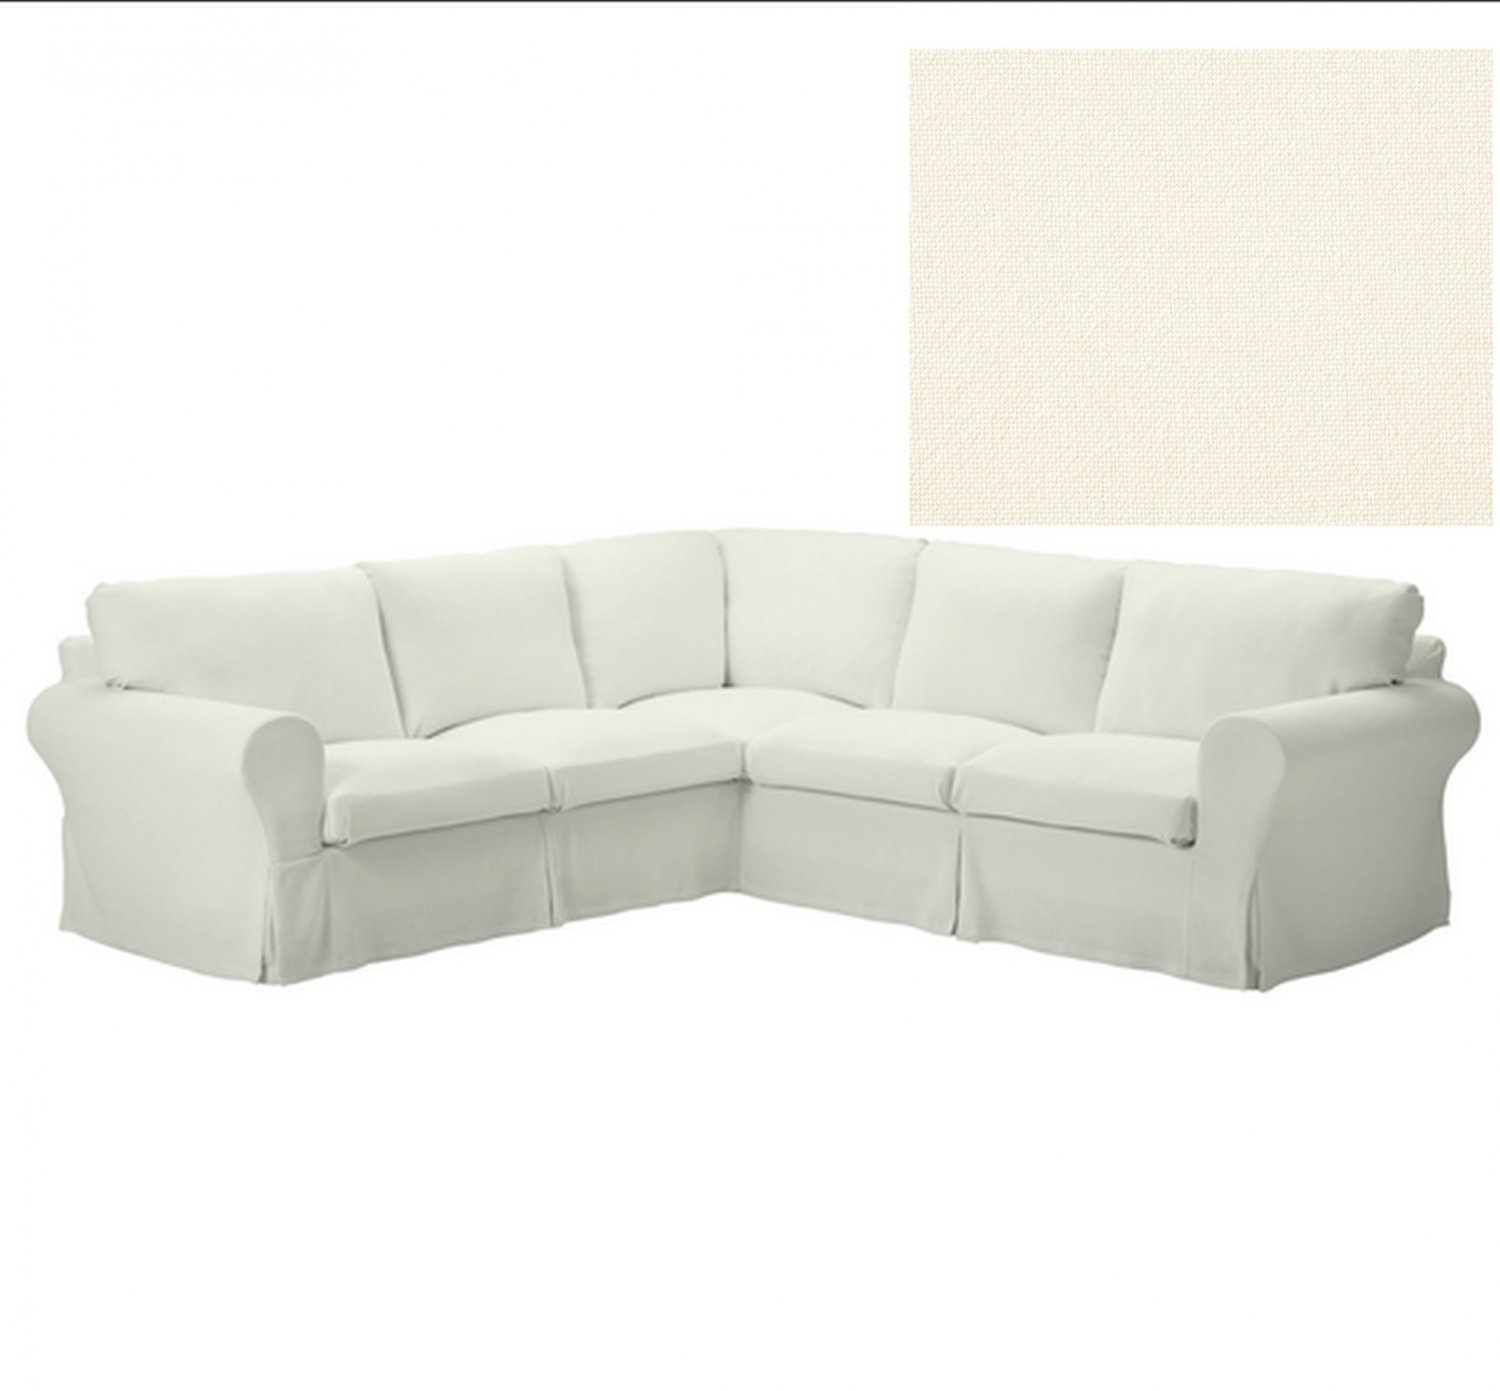 off white slipcover sofa modern cloth set designs ikea ektorp 2 432 corner stenasa